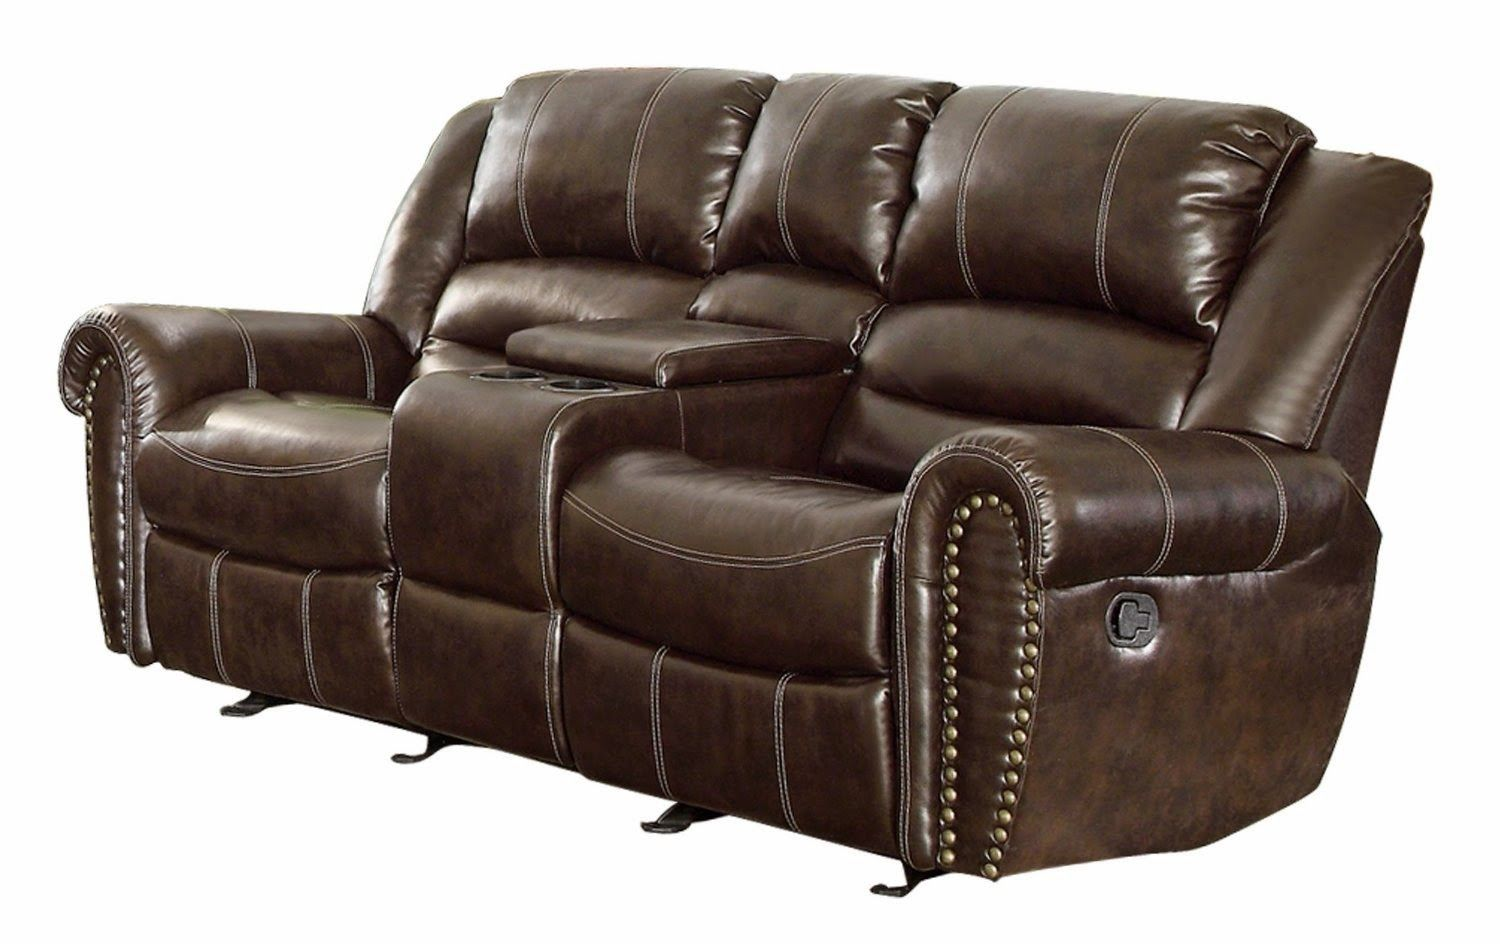 95 Reference Of Jual Sofa Recliner 2 Seater Leather Couch Furniture Leather Couch Sectional Couch And Loveseat